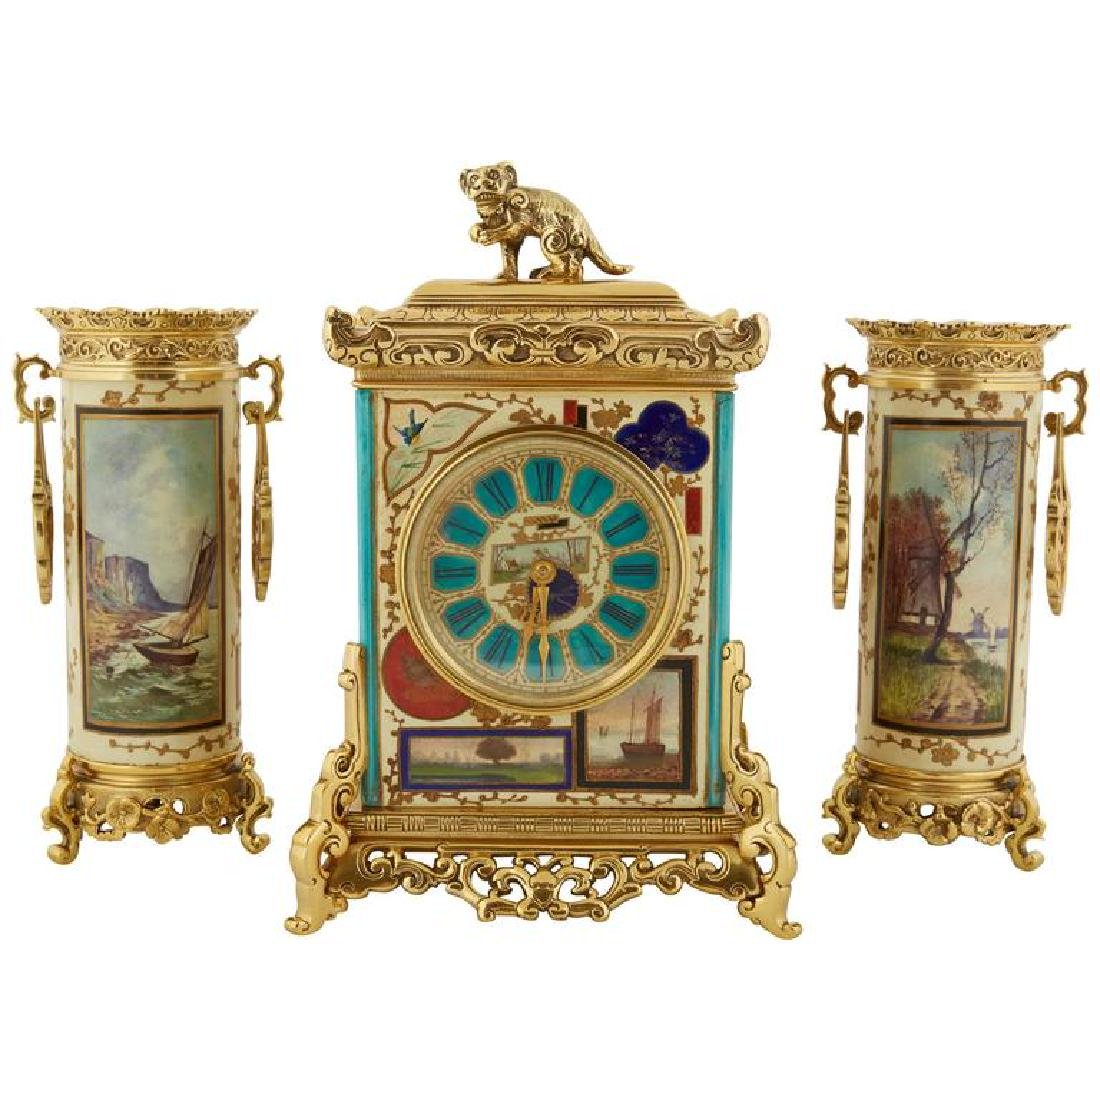 French Japonisme Gilt-Metal Mounted Clock Garniture Set